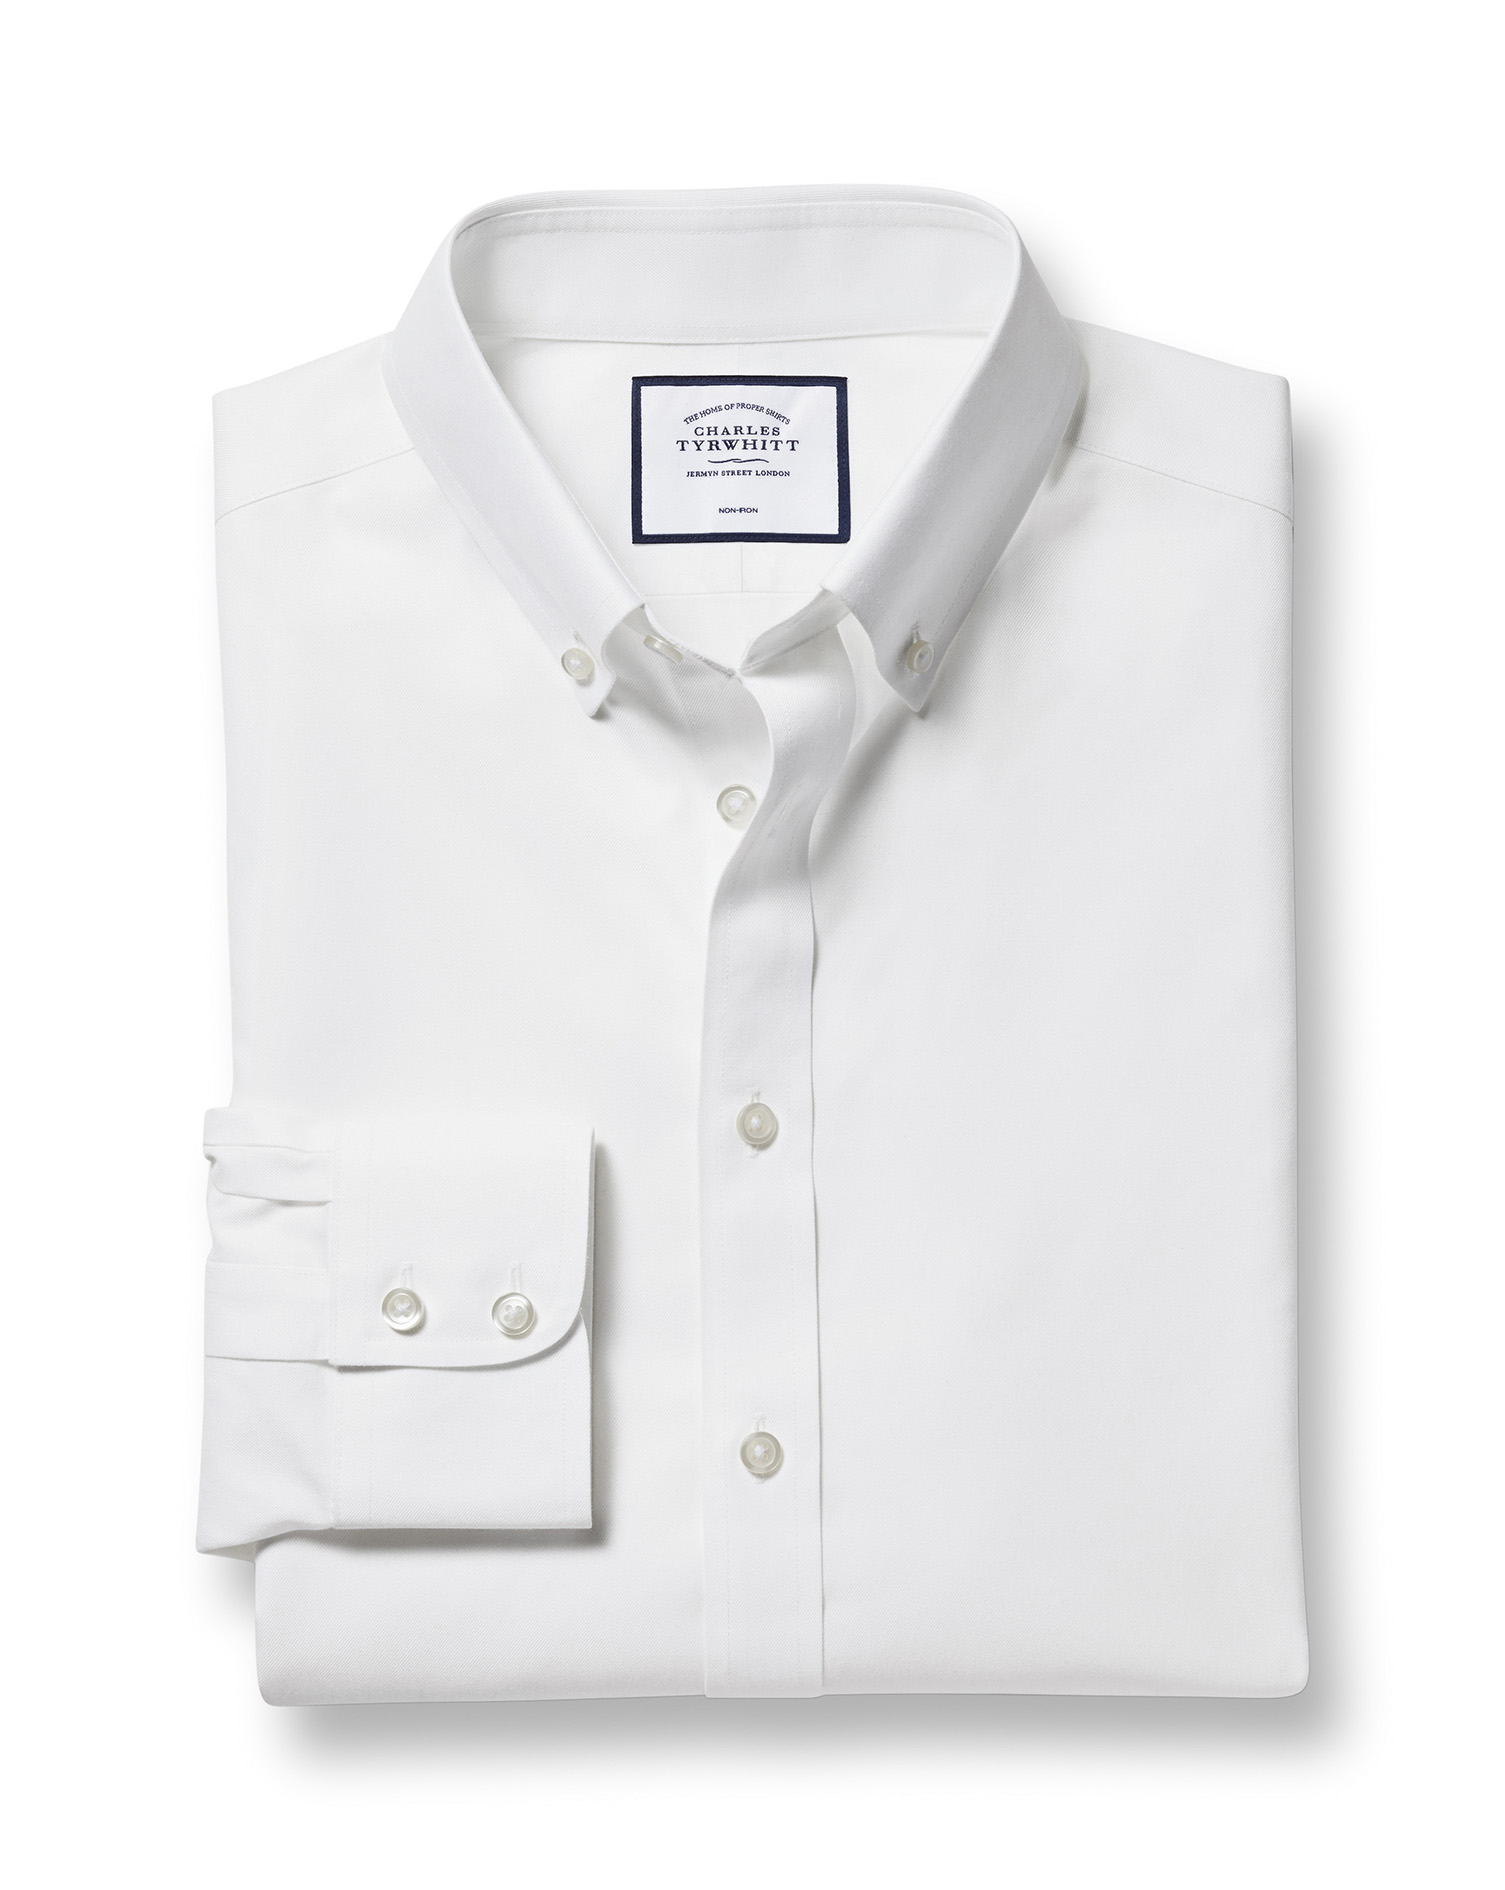 Slim Fit Button Down Non Iron Twill White Shirt Charles